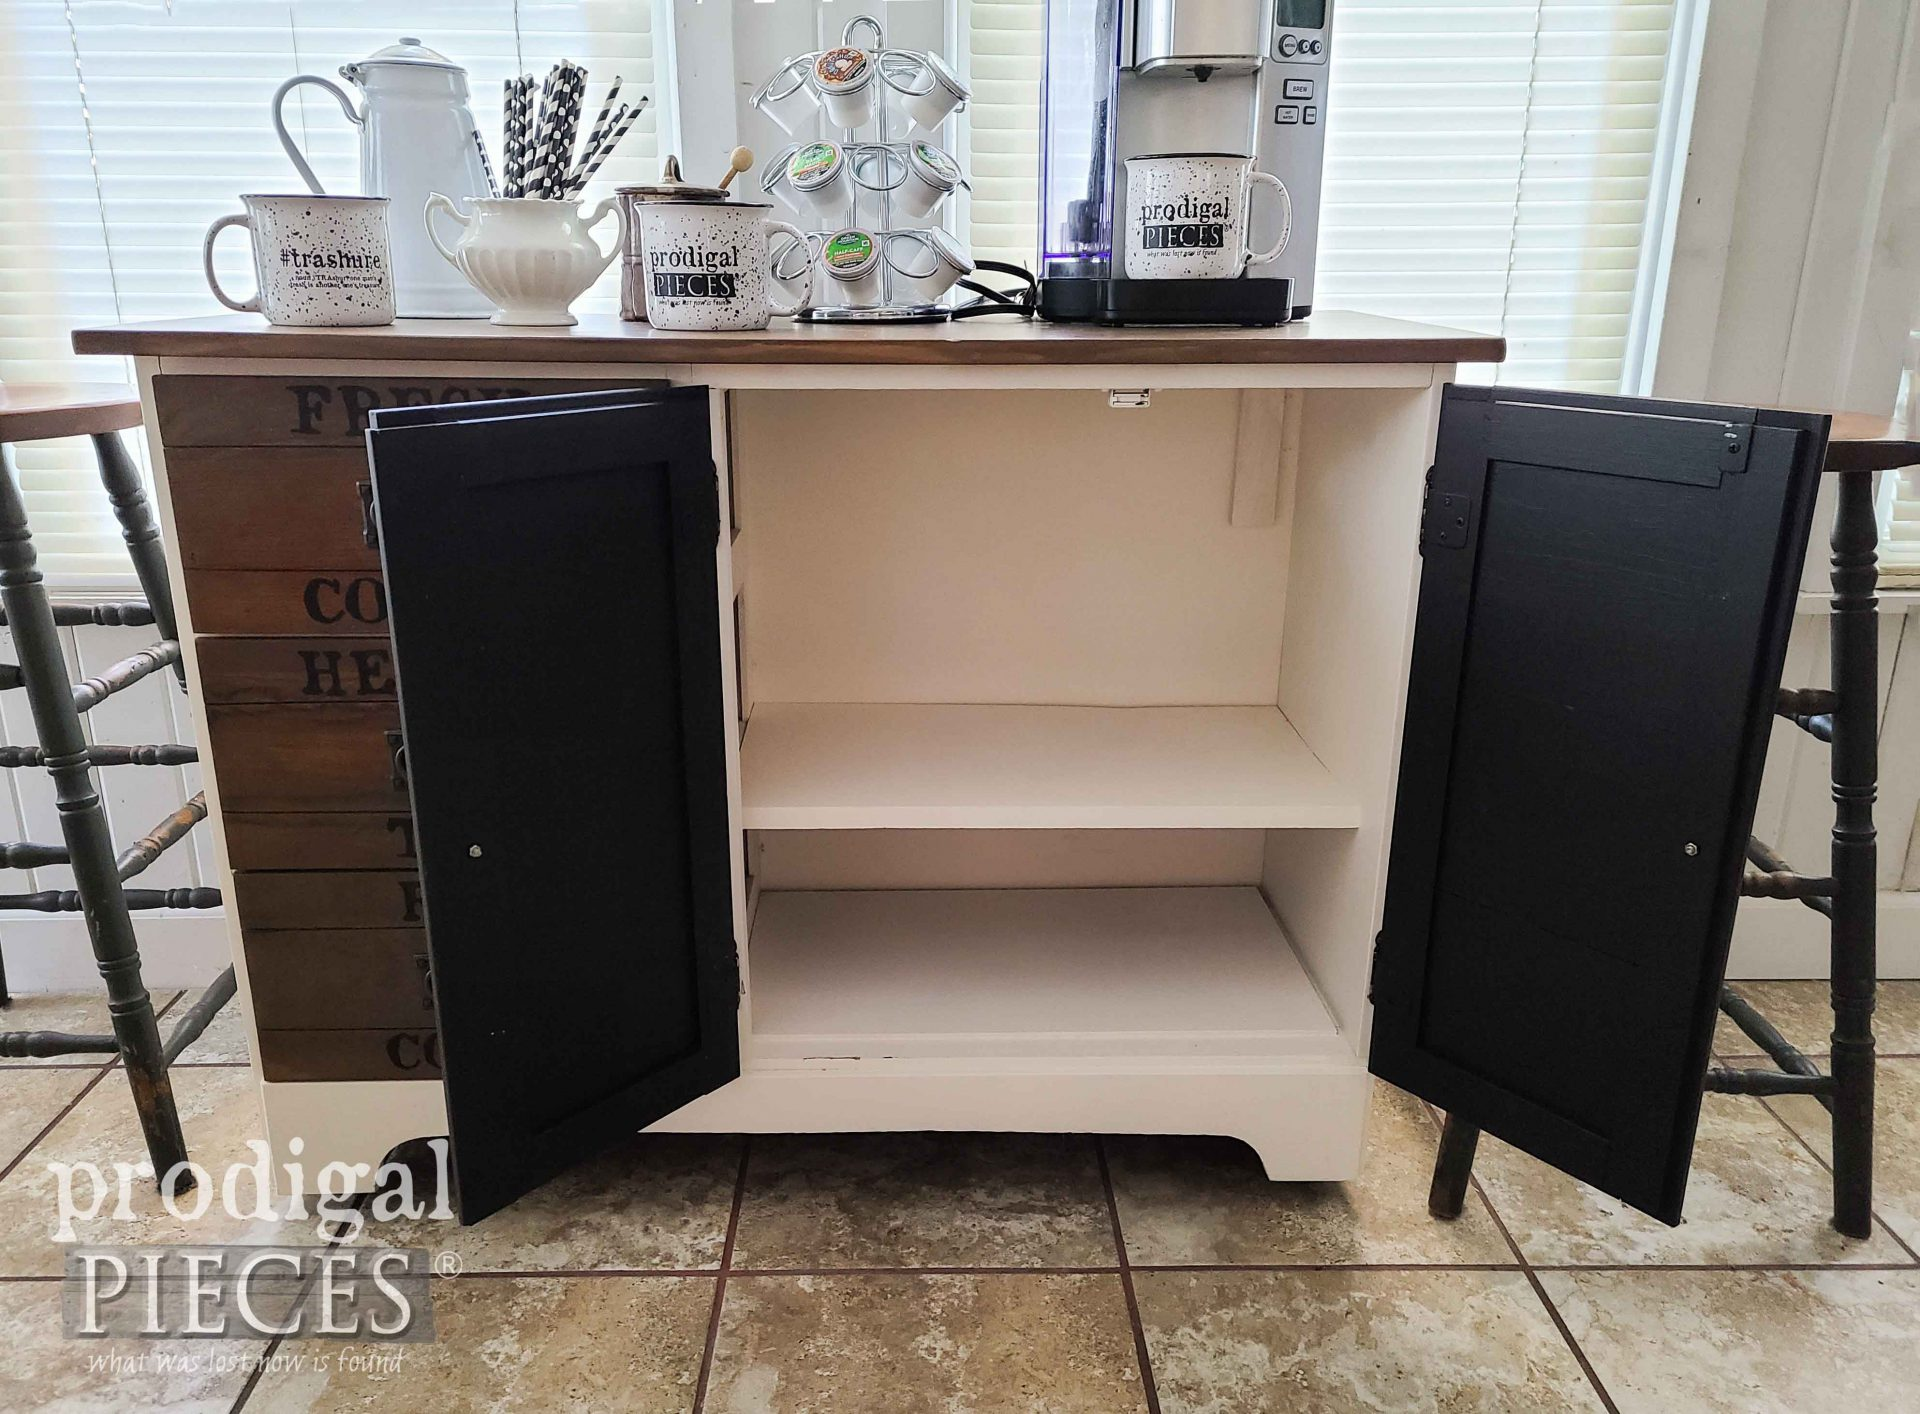 Open DIY Coffee Bar Cabinet by Larissa of Prodigal Pieces | prodigalpieces.com #prodigalpieces #diy #home #furniture #homedecor